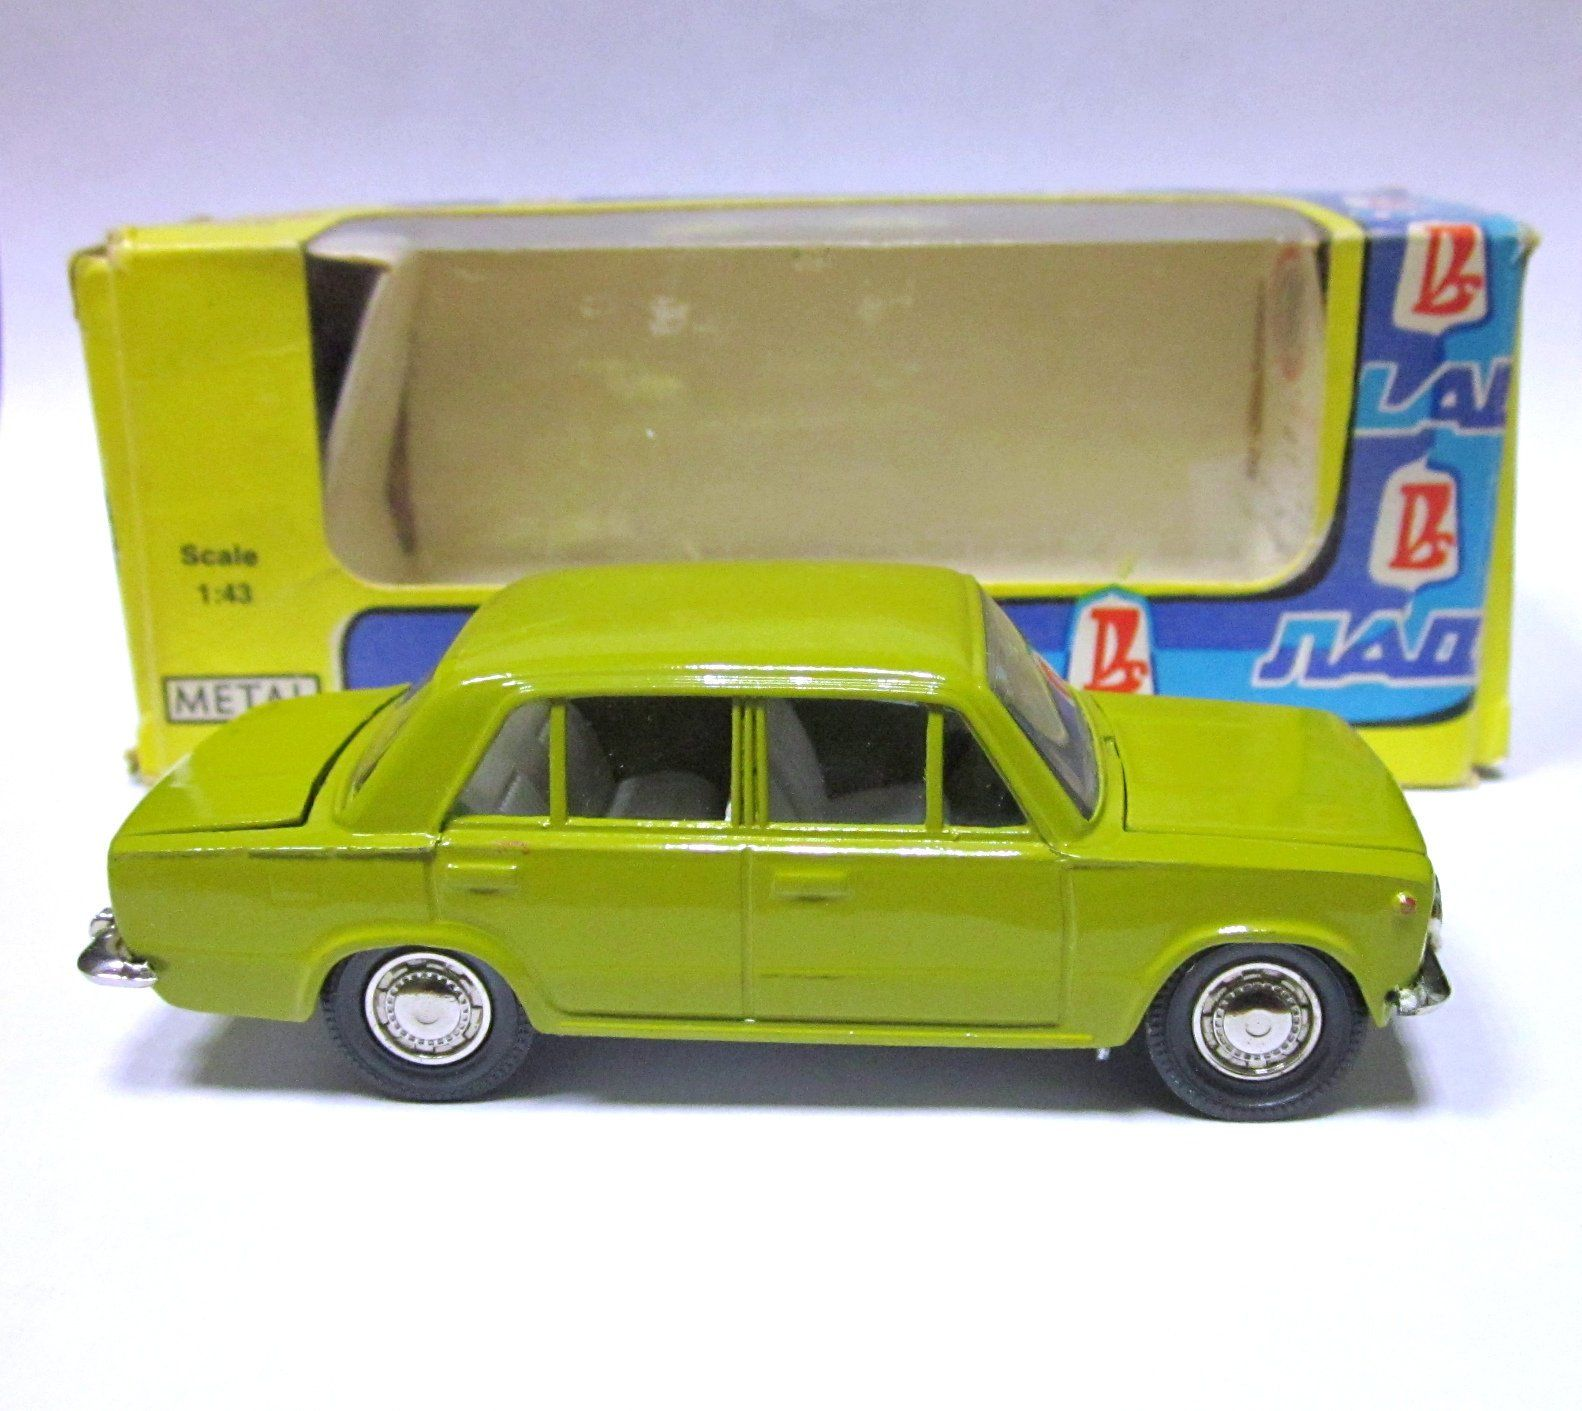 Soviet Toy Russian toy Rare VAZ 2101 lada A9 metal Vintage Toy Car